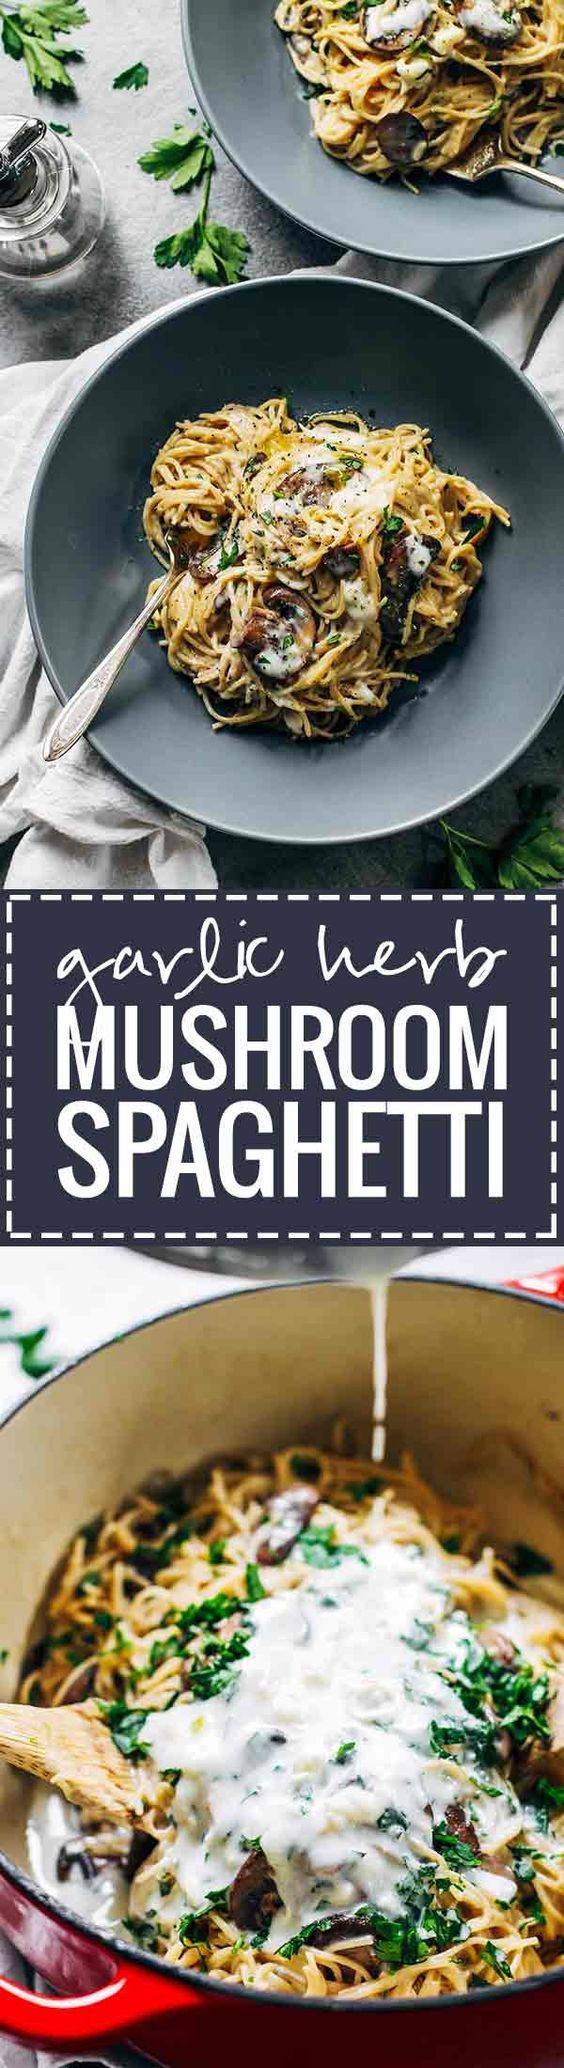 Creamy Garlic Herb Mushroom Spaghetti - this recipe is total comfort food! Simple ingredients, ready in about 30 minutes, vegetarian. ♡ pinchofyum.com: